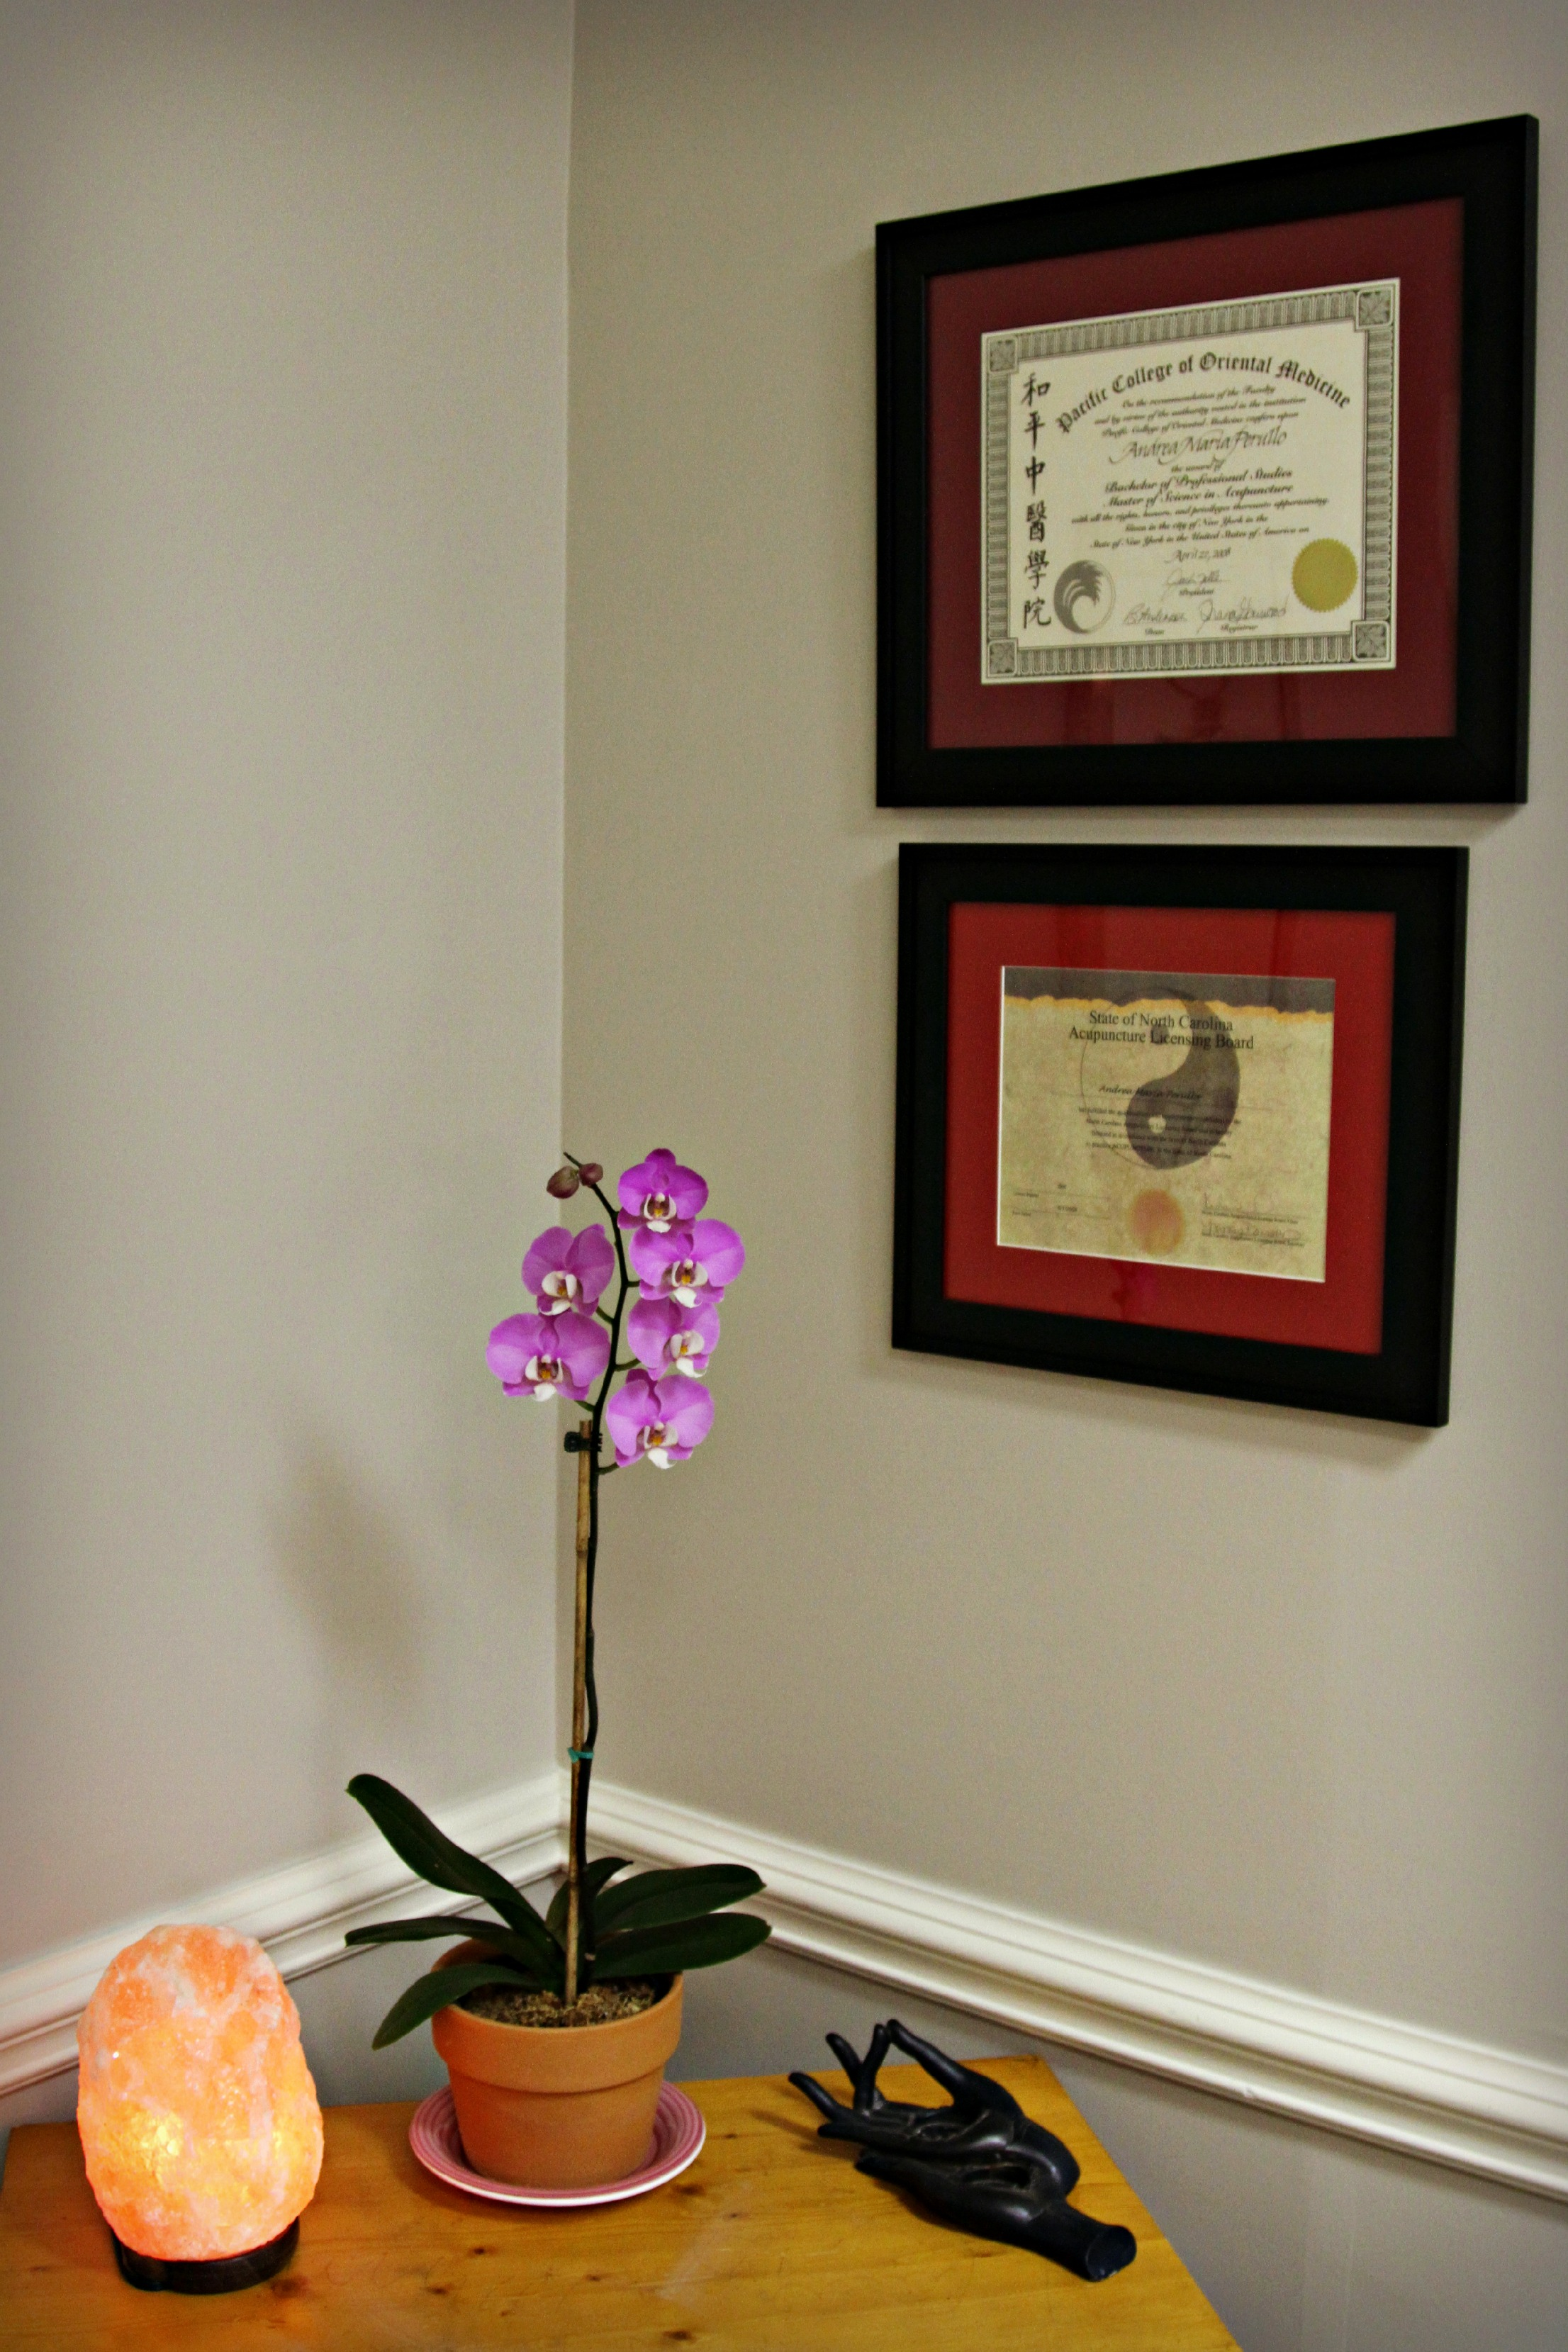 The Healing Hands Acupuncture and Herbal Clinic